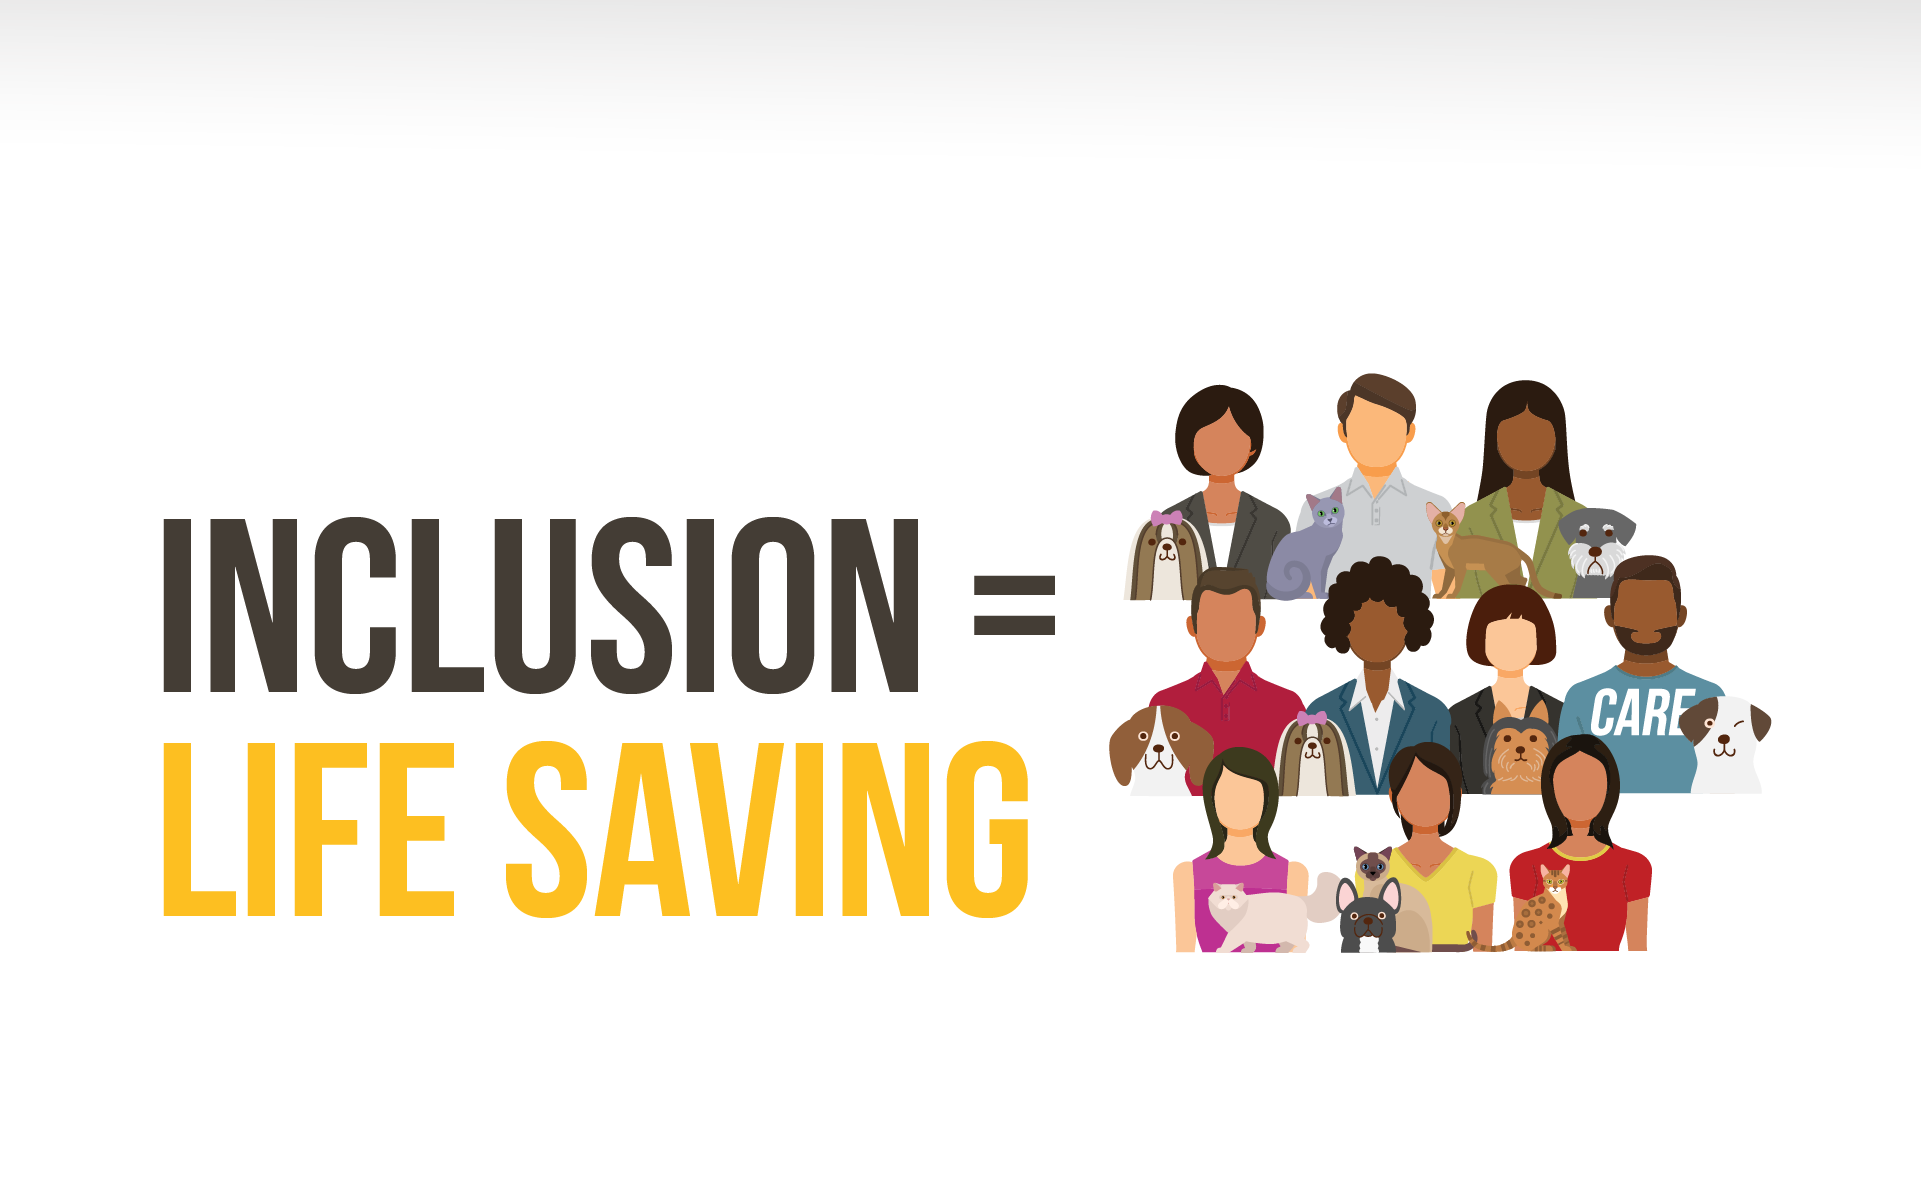 Inclusion = Lifesaving